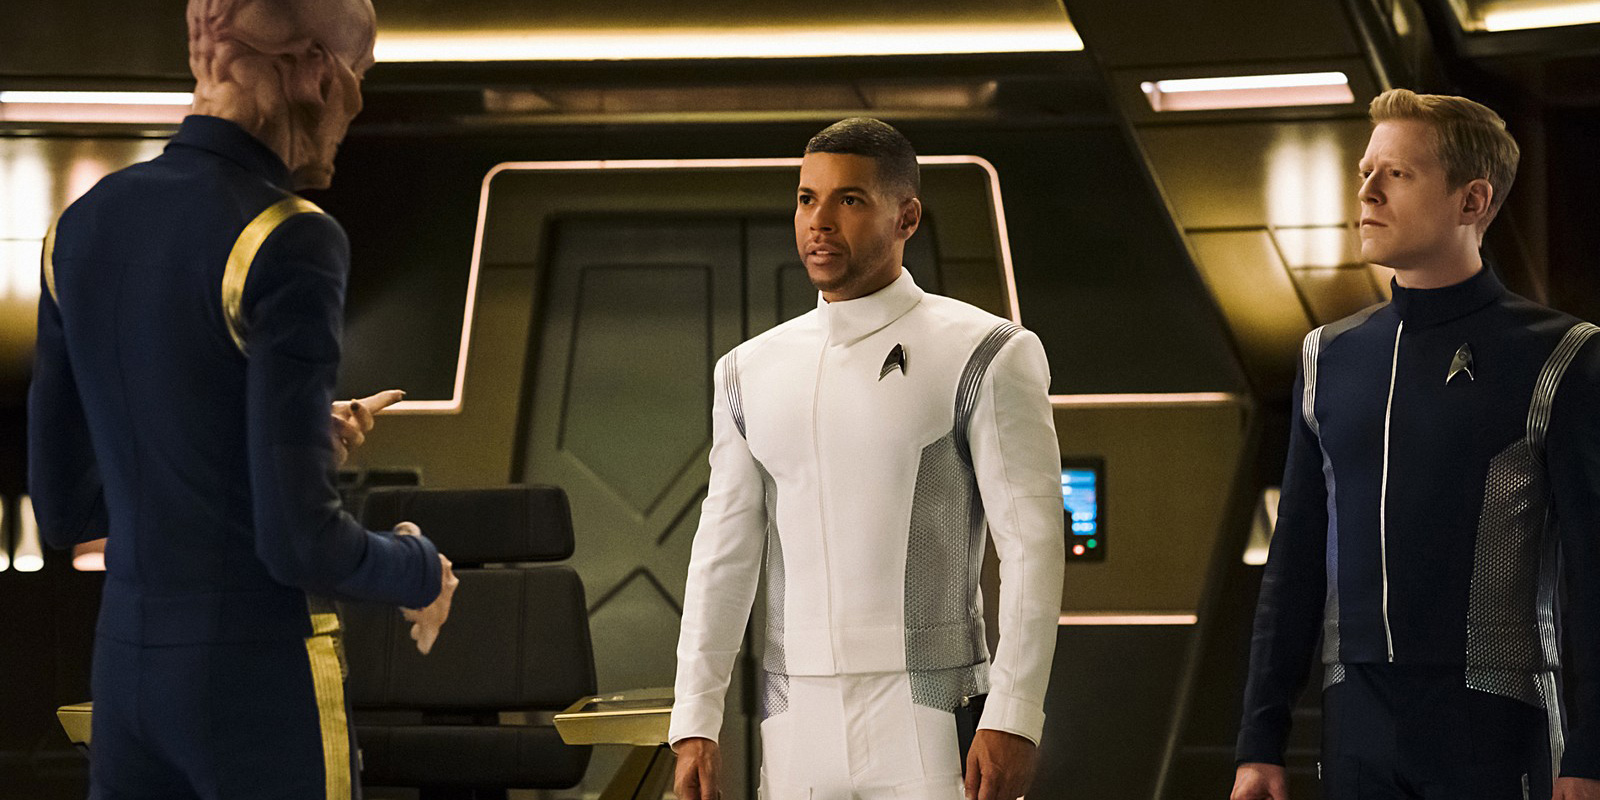 Culber, Saru, and Stamets in Star Trek: Discovery